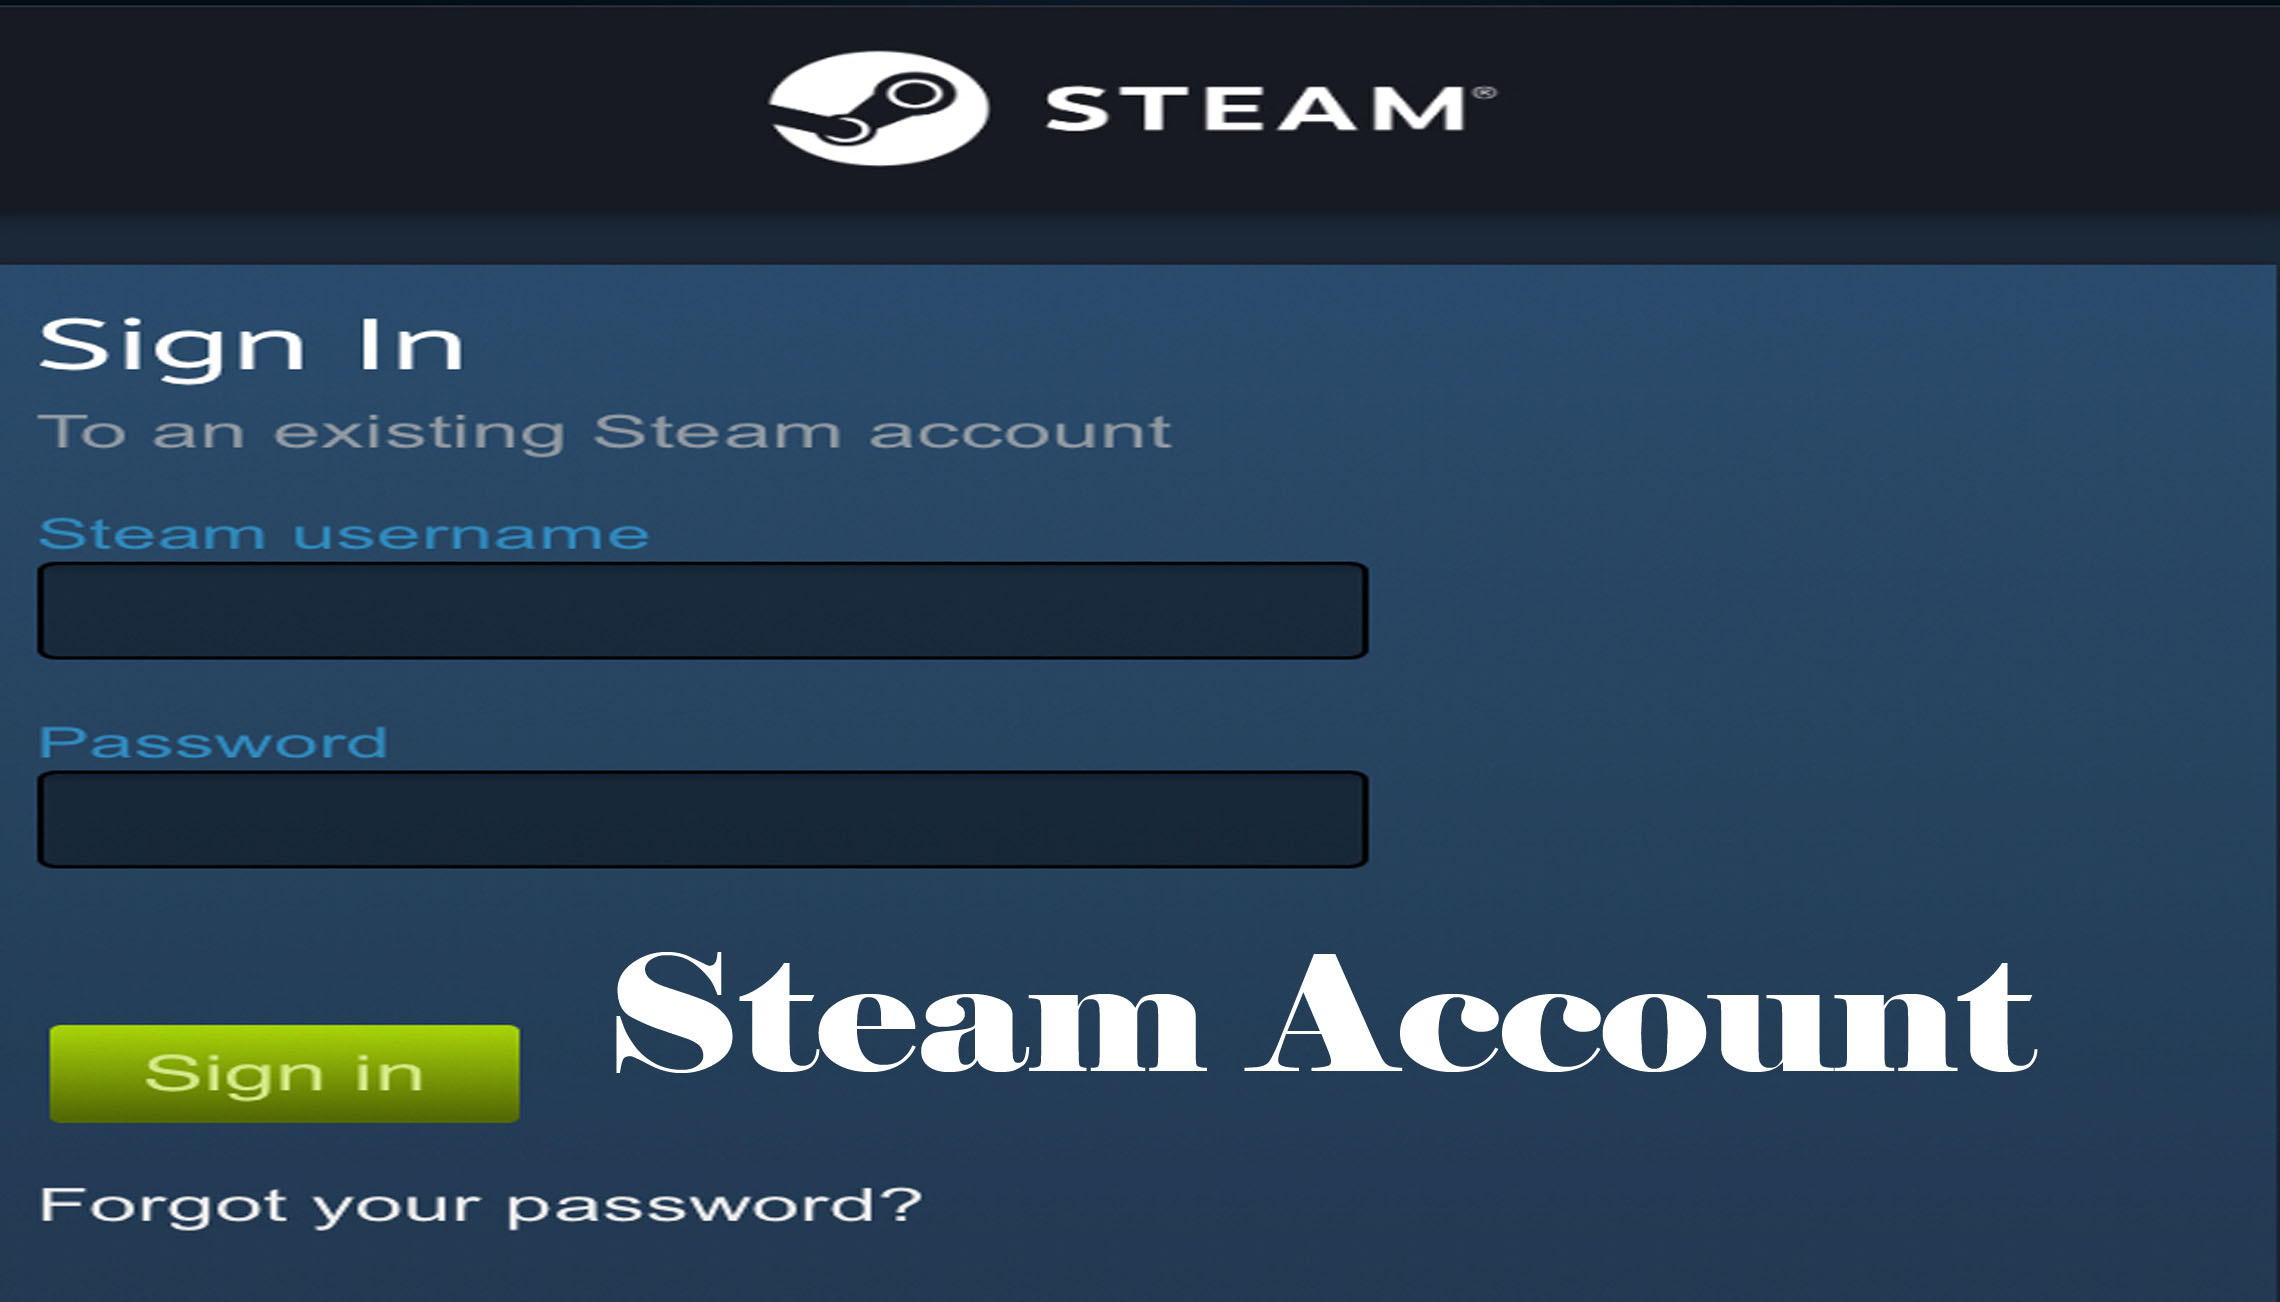 Steam Account - Steam Sign Up | Steam Log In